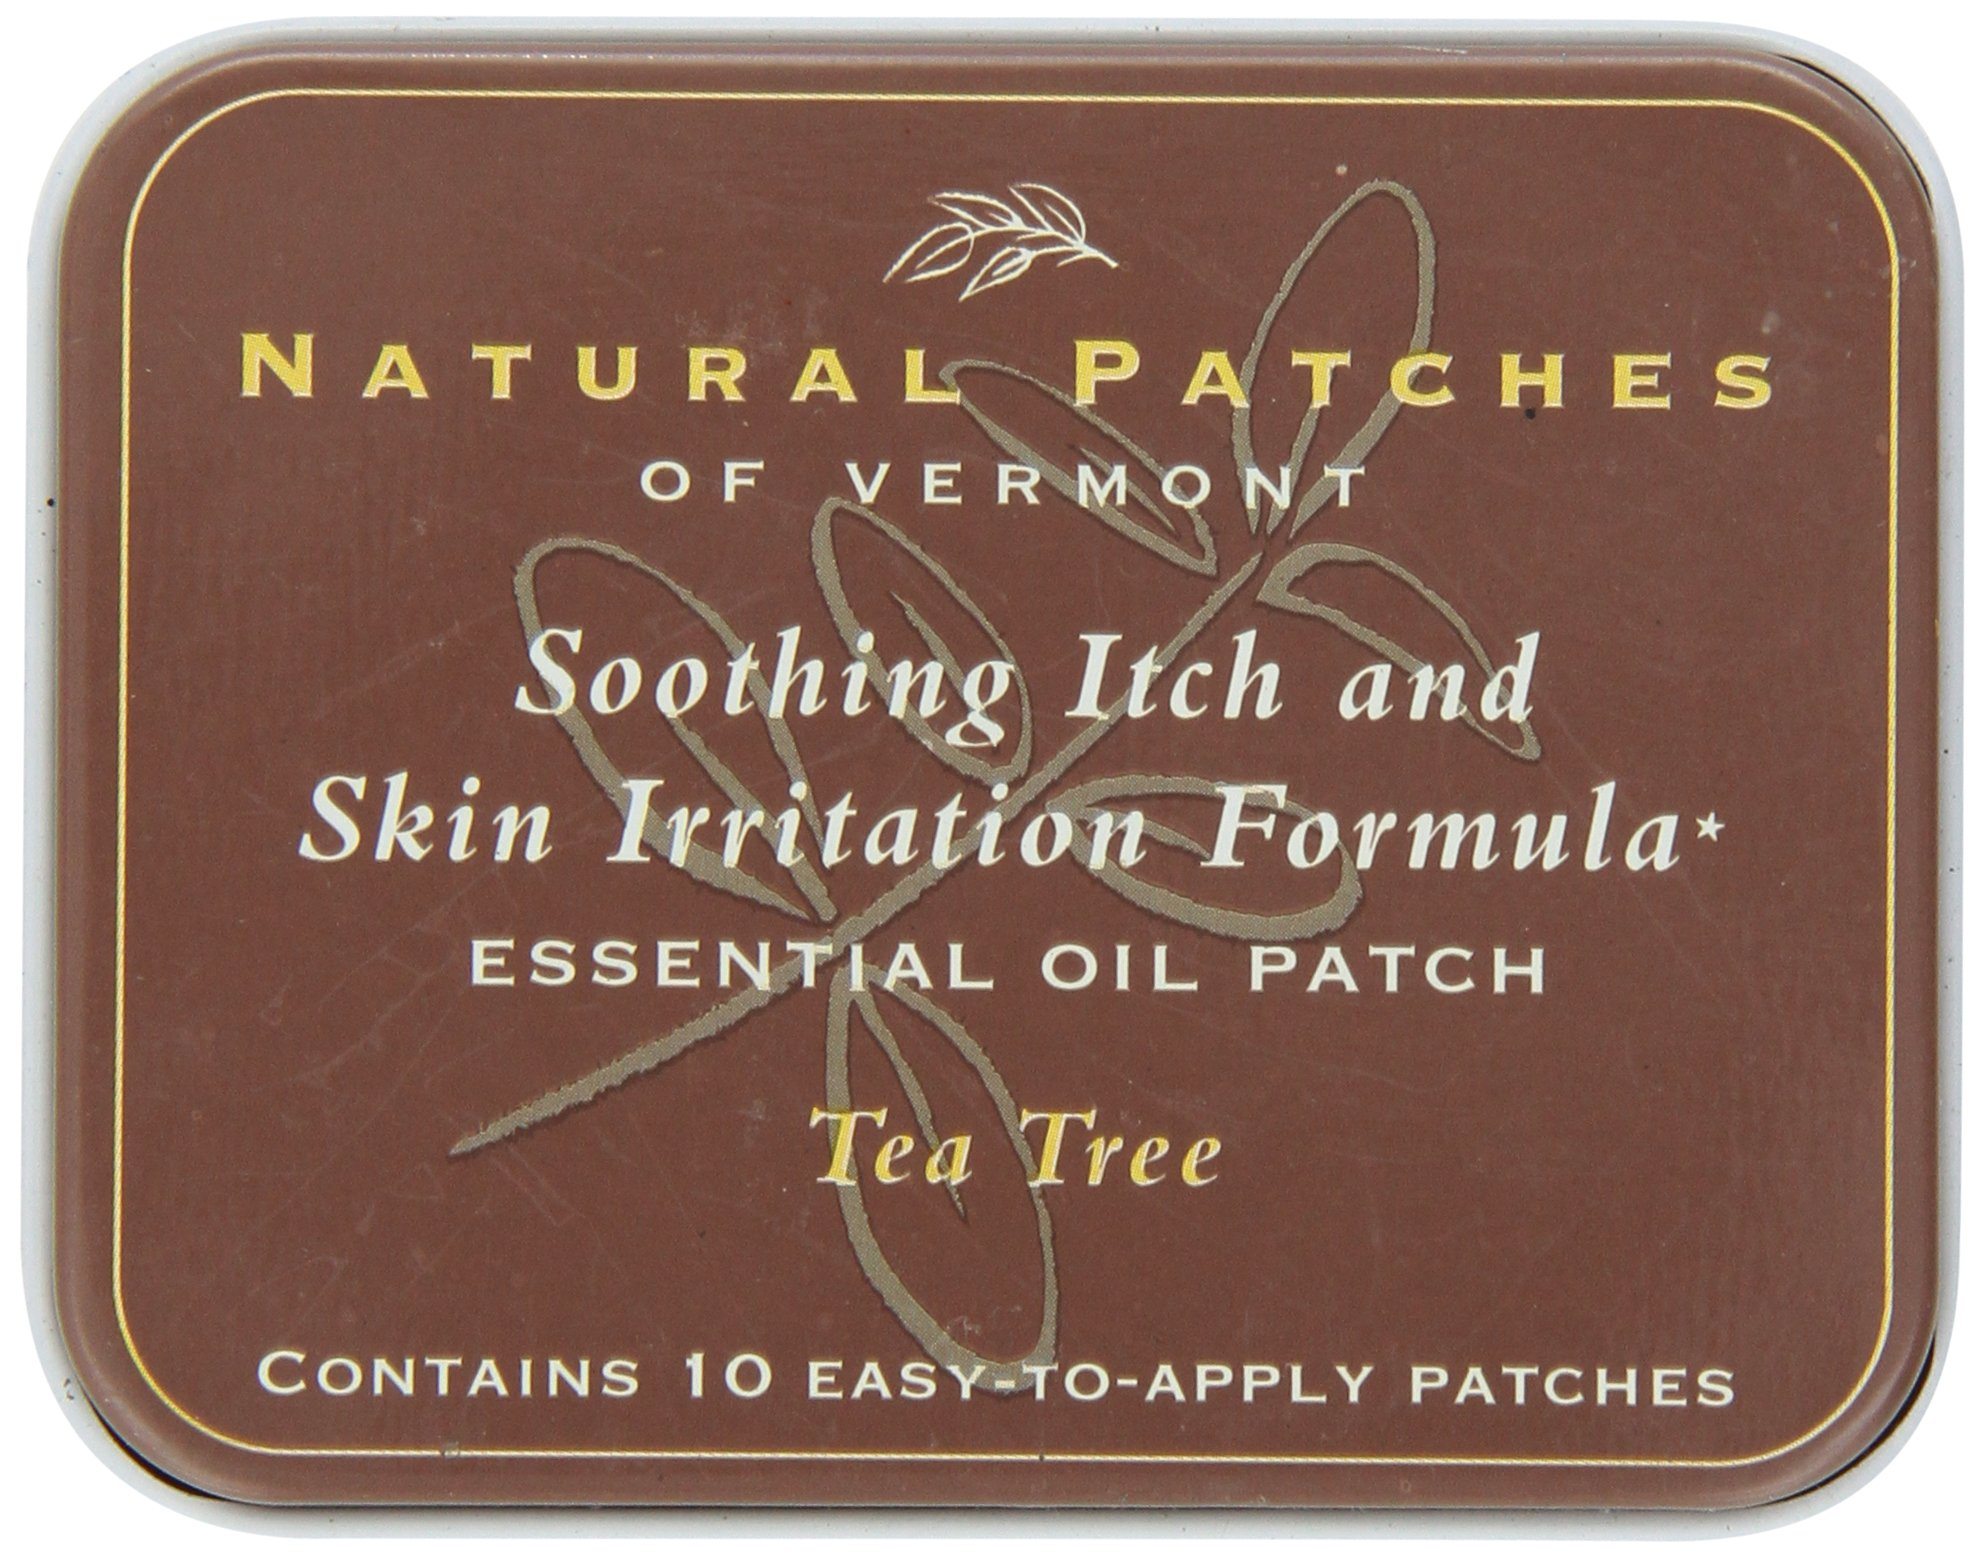 Natural Patches Of Vermont Tea Tree Itch & Skin Care Essential Oil Body Patches, 10-Count  Tins